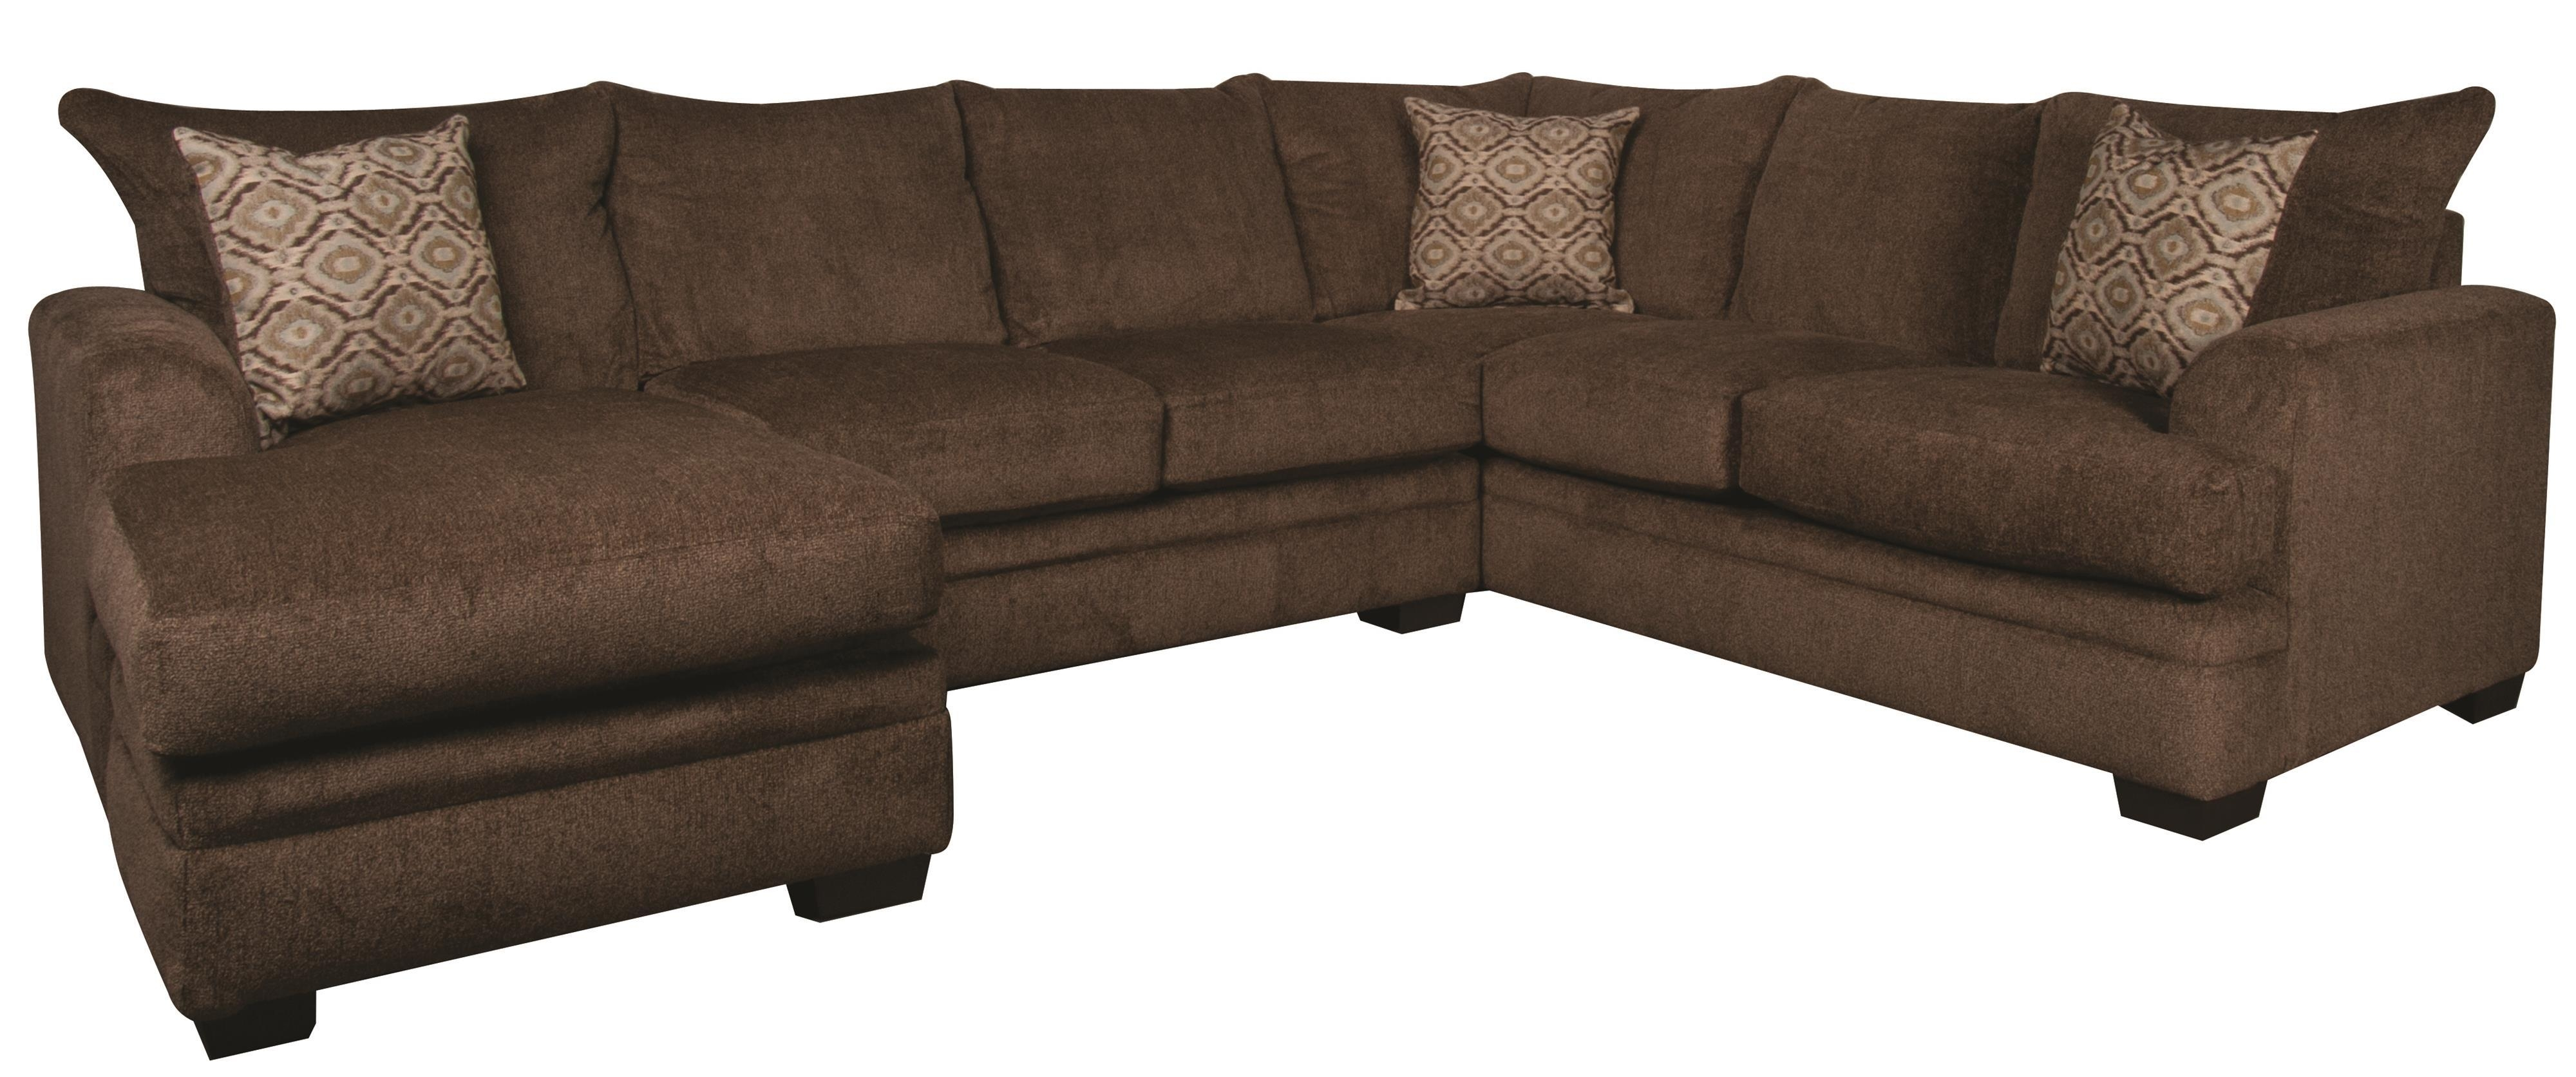 Sofas : Wonderful Small Sectional Sofa Bed Tan Leather Sectional With Small 2 Piece Sectional Sofas (Image 22 of 23)